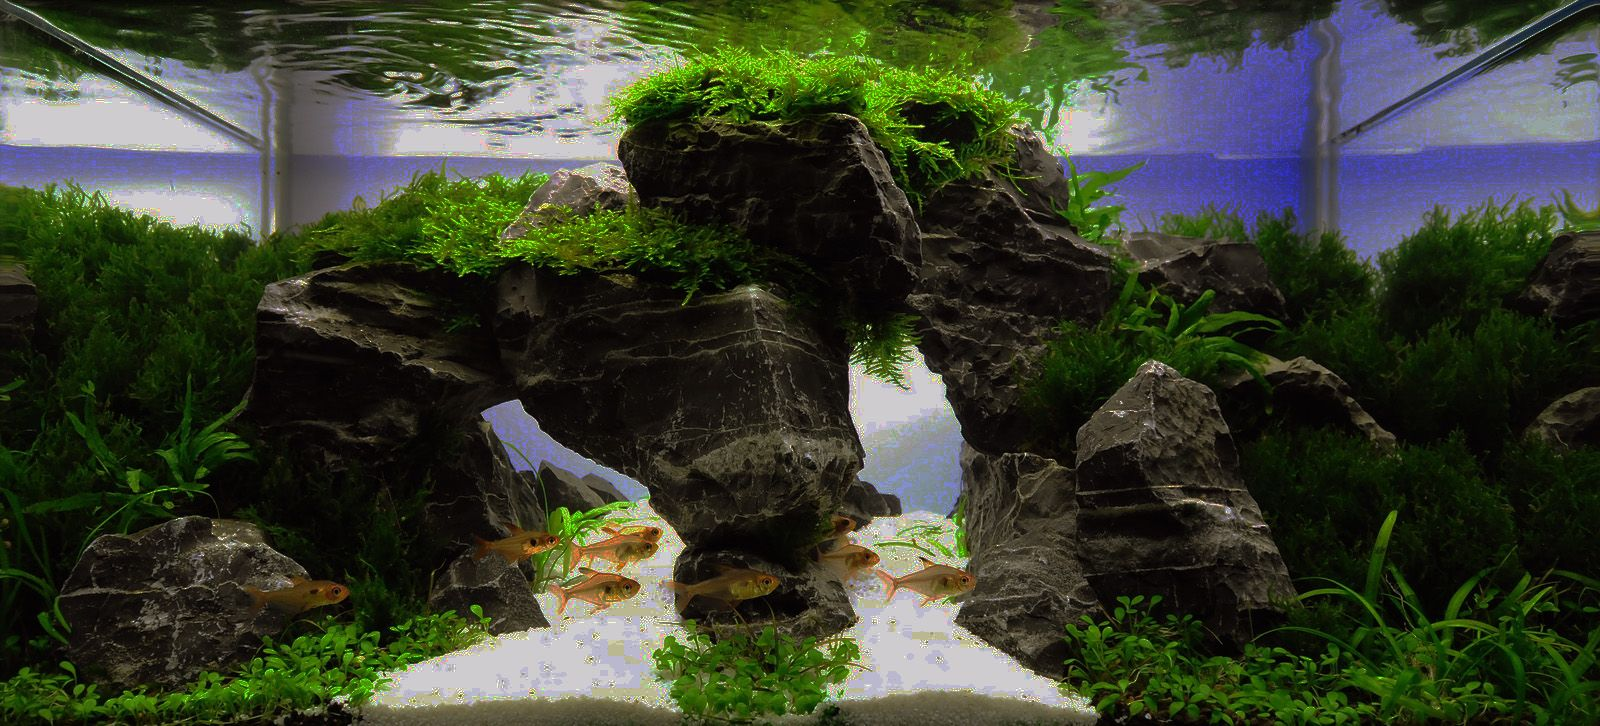 Aquascaping | Concours aquascaping | Planted aquarium ...